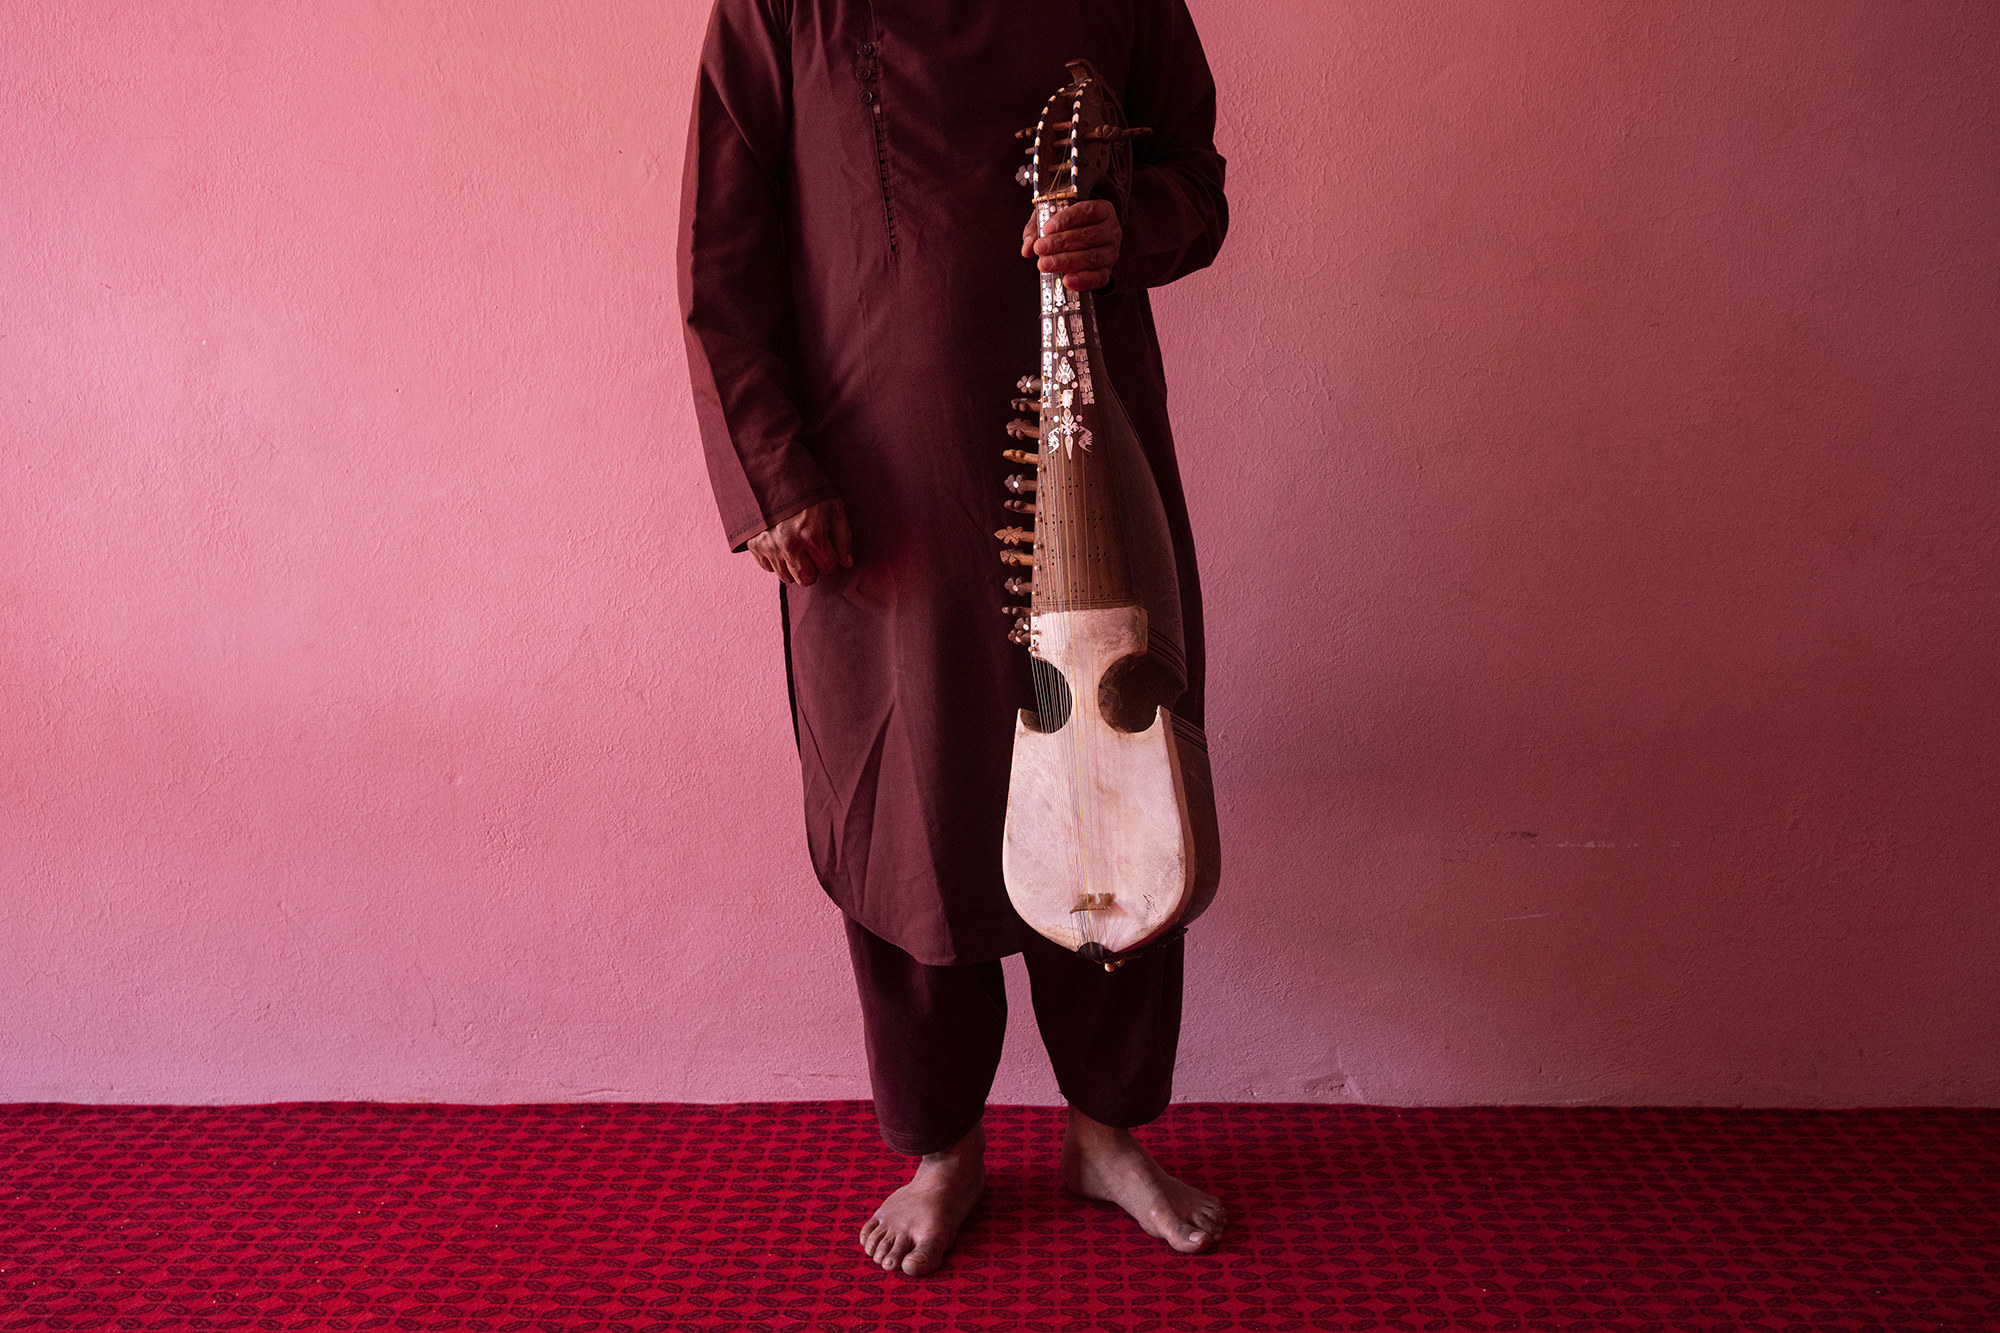 Barefoot person shown from the neck down holding a stringed instrument